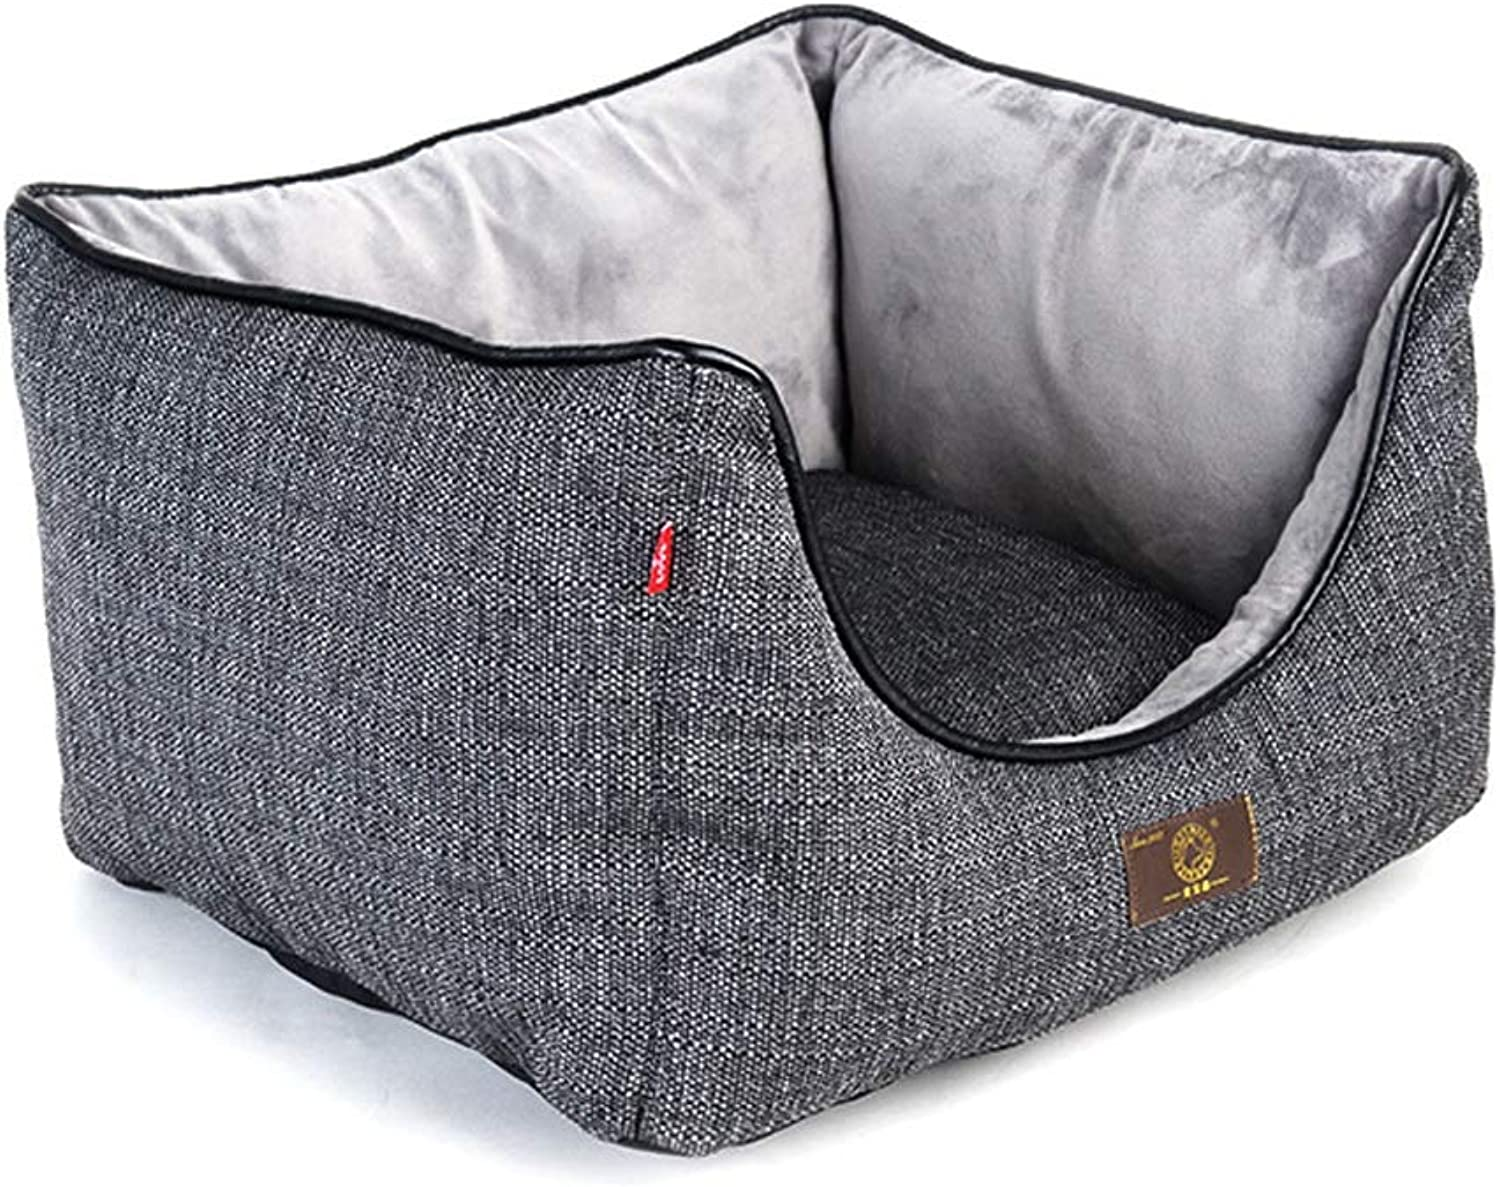 Dog Bed, Wear Resistant Comfortable Winter Warm Washable Not Sticky Hair Pet Basket Mat Cushion Medium Large XL (Size   M)